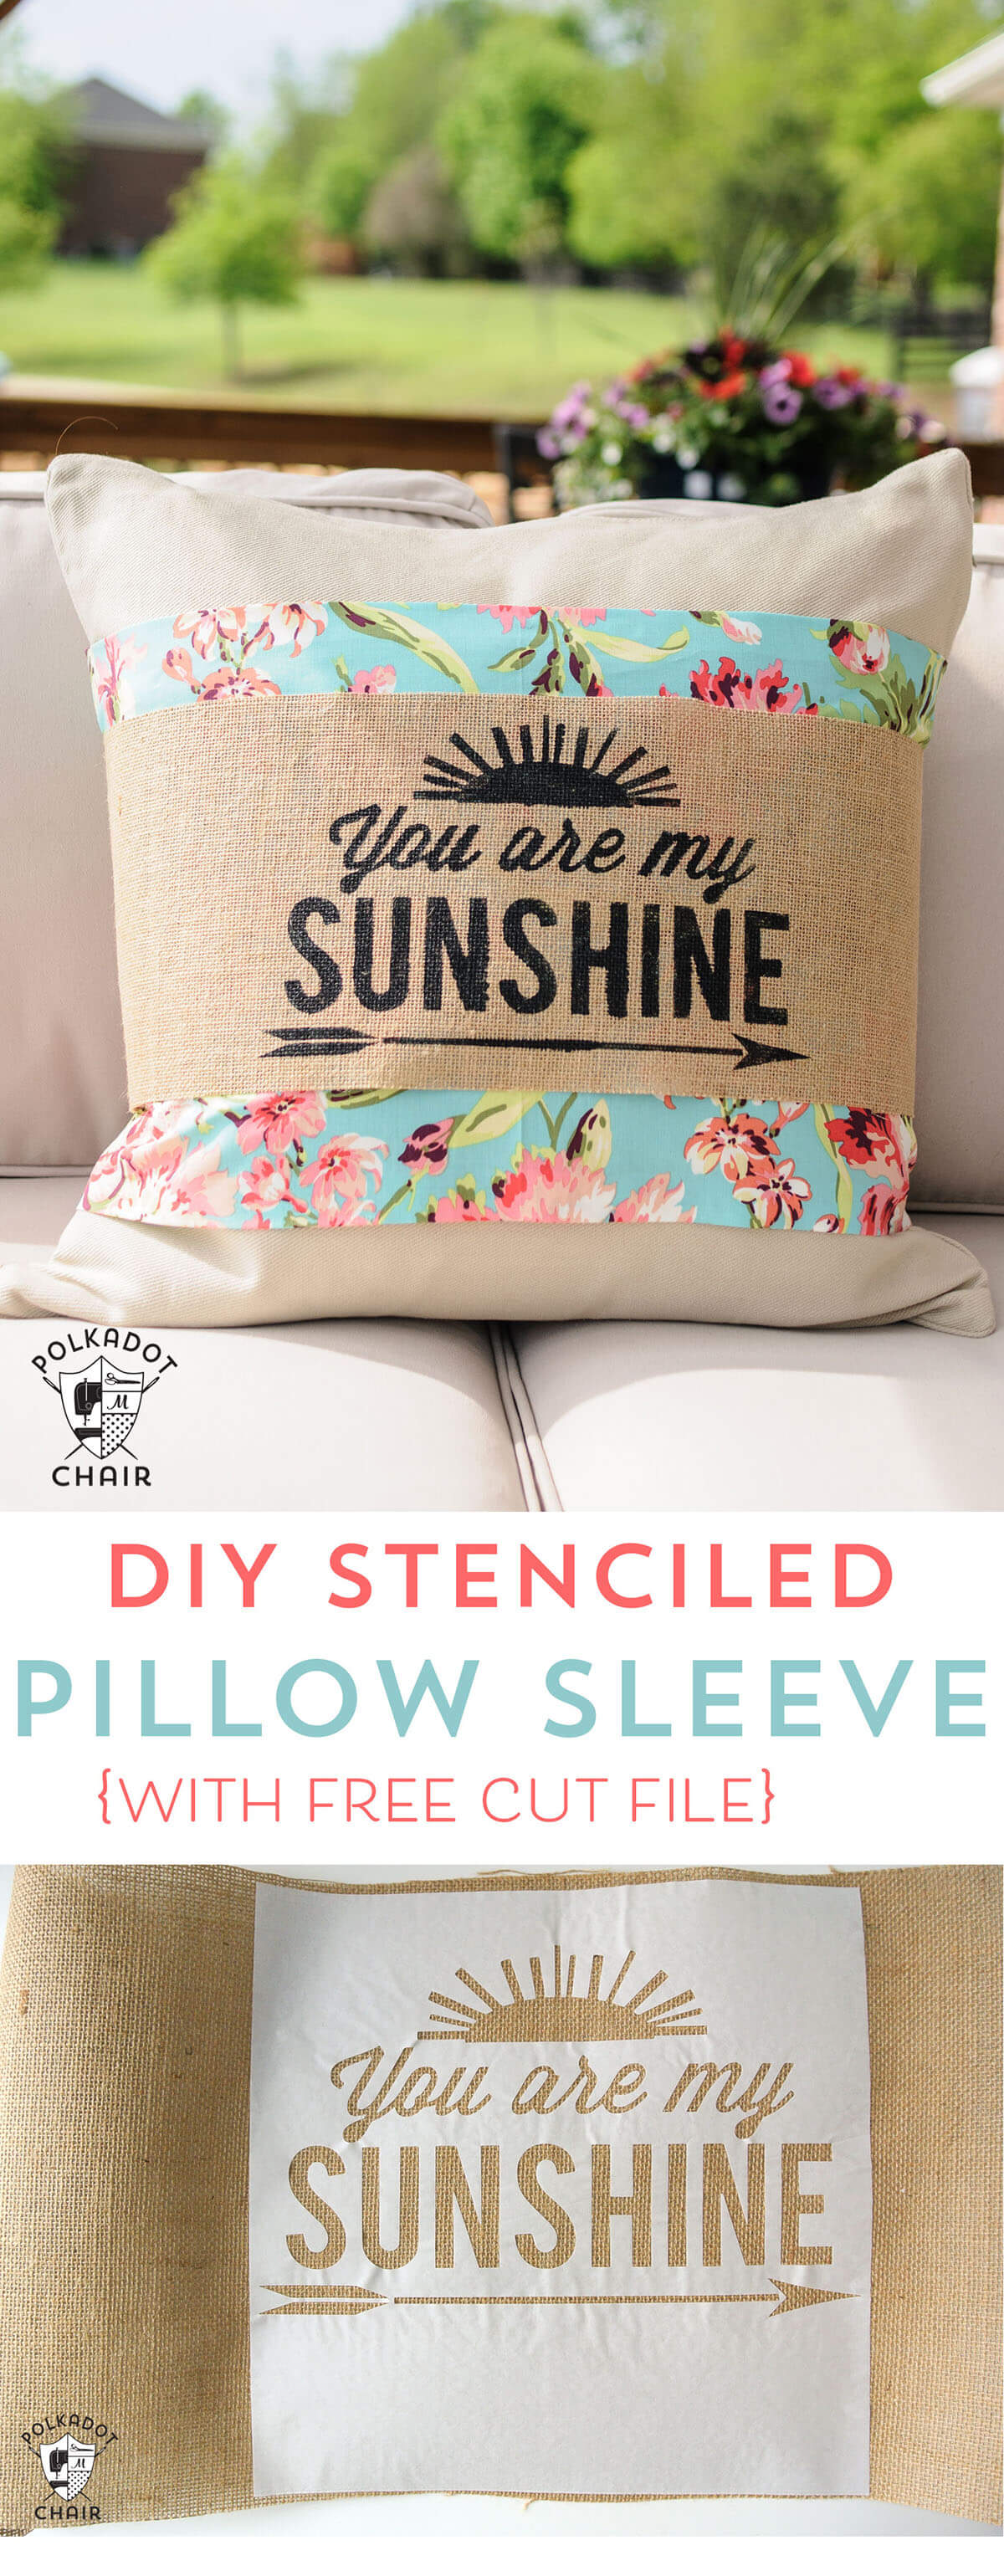 Joyful Lounging DIY Stenciled Pillow Sleeve